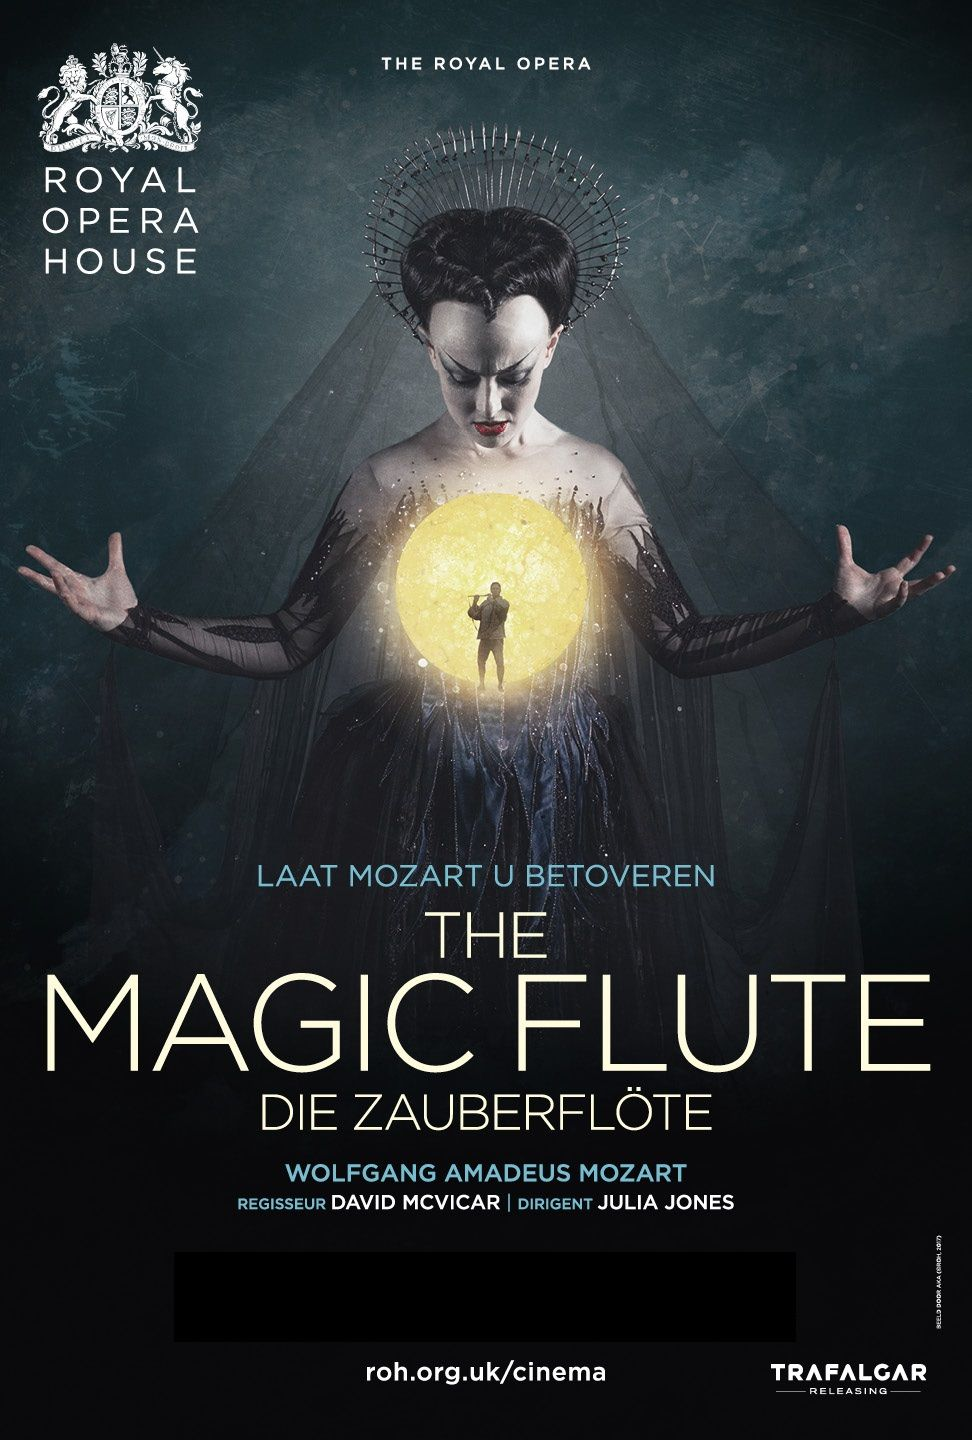 The Magic Flute Die Zauberflote Royal Opera House 5 October 2017 The Magic Flute Opera Opera House